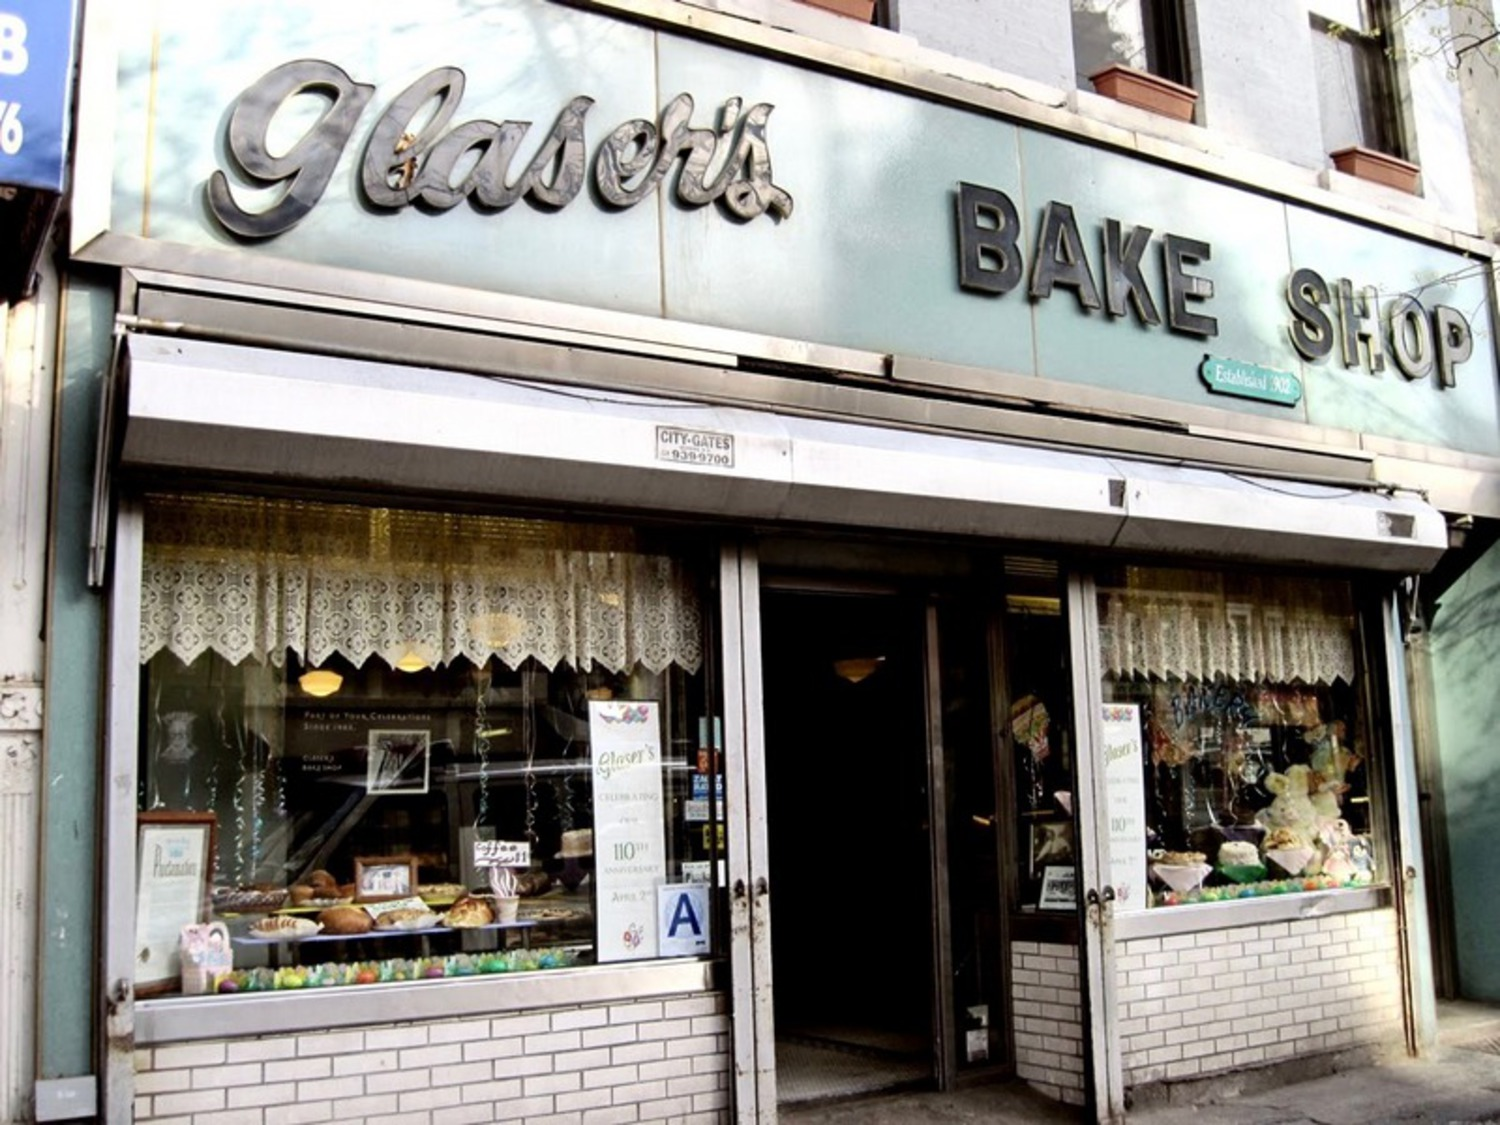 Glaser's Bake Shop